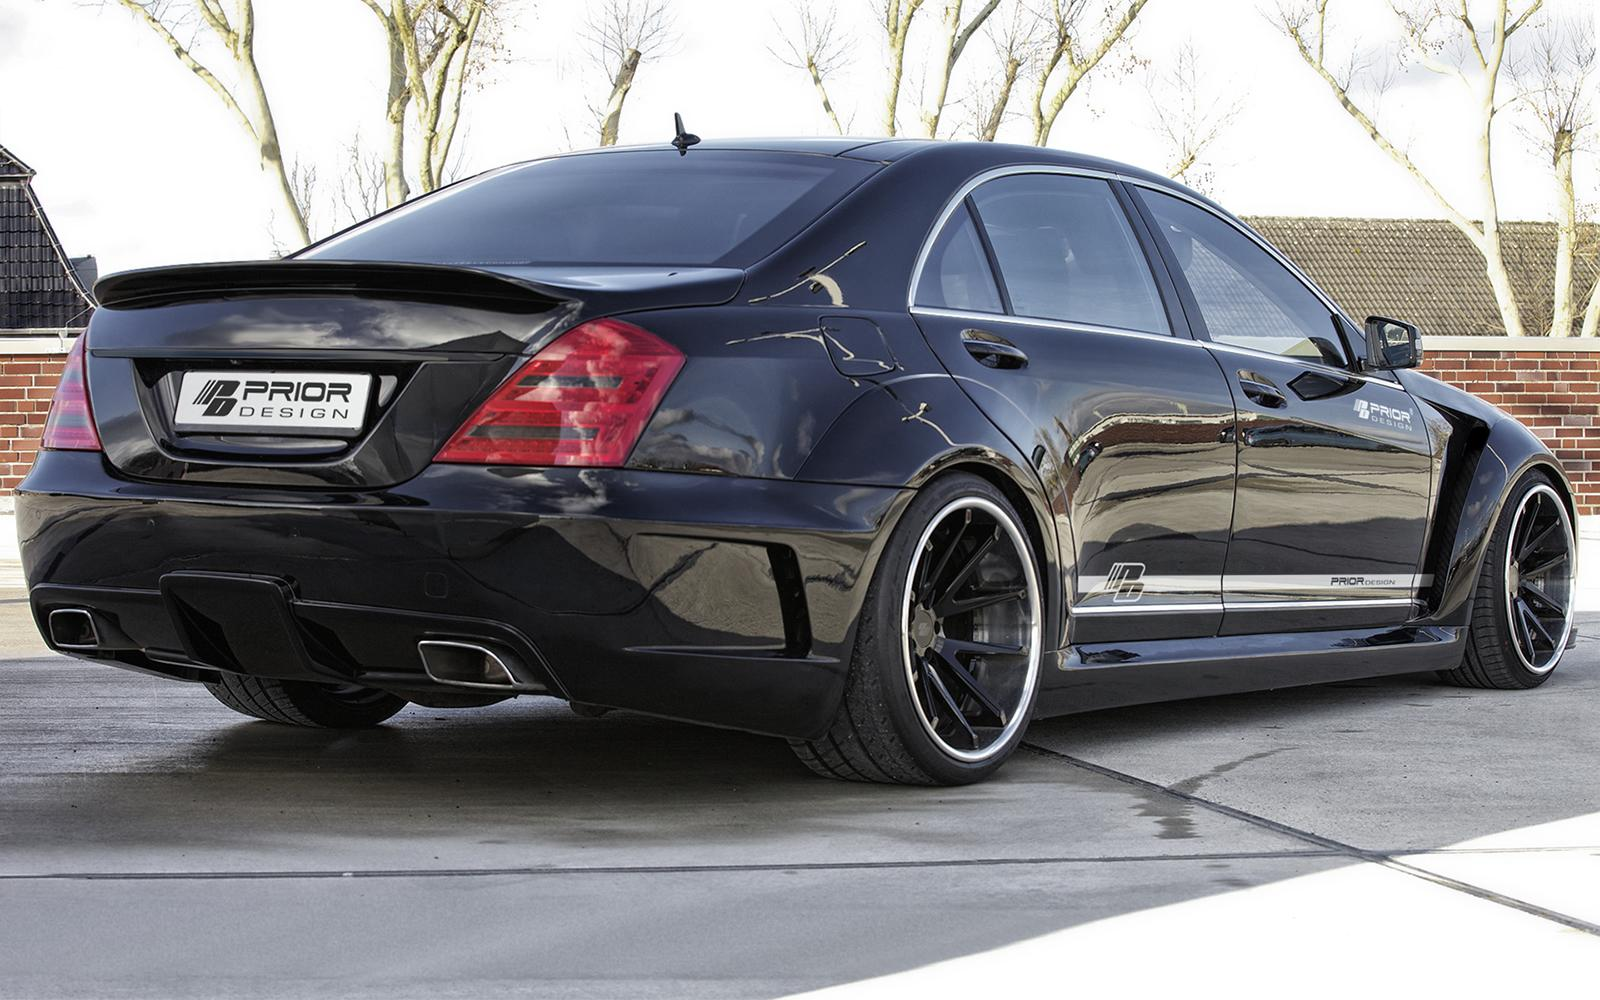 S Class W221 Gets Vip Style Tuning From Prior Design